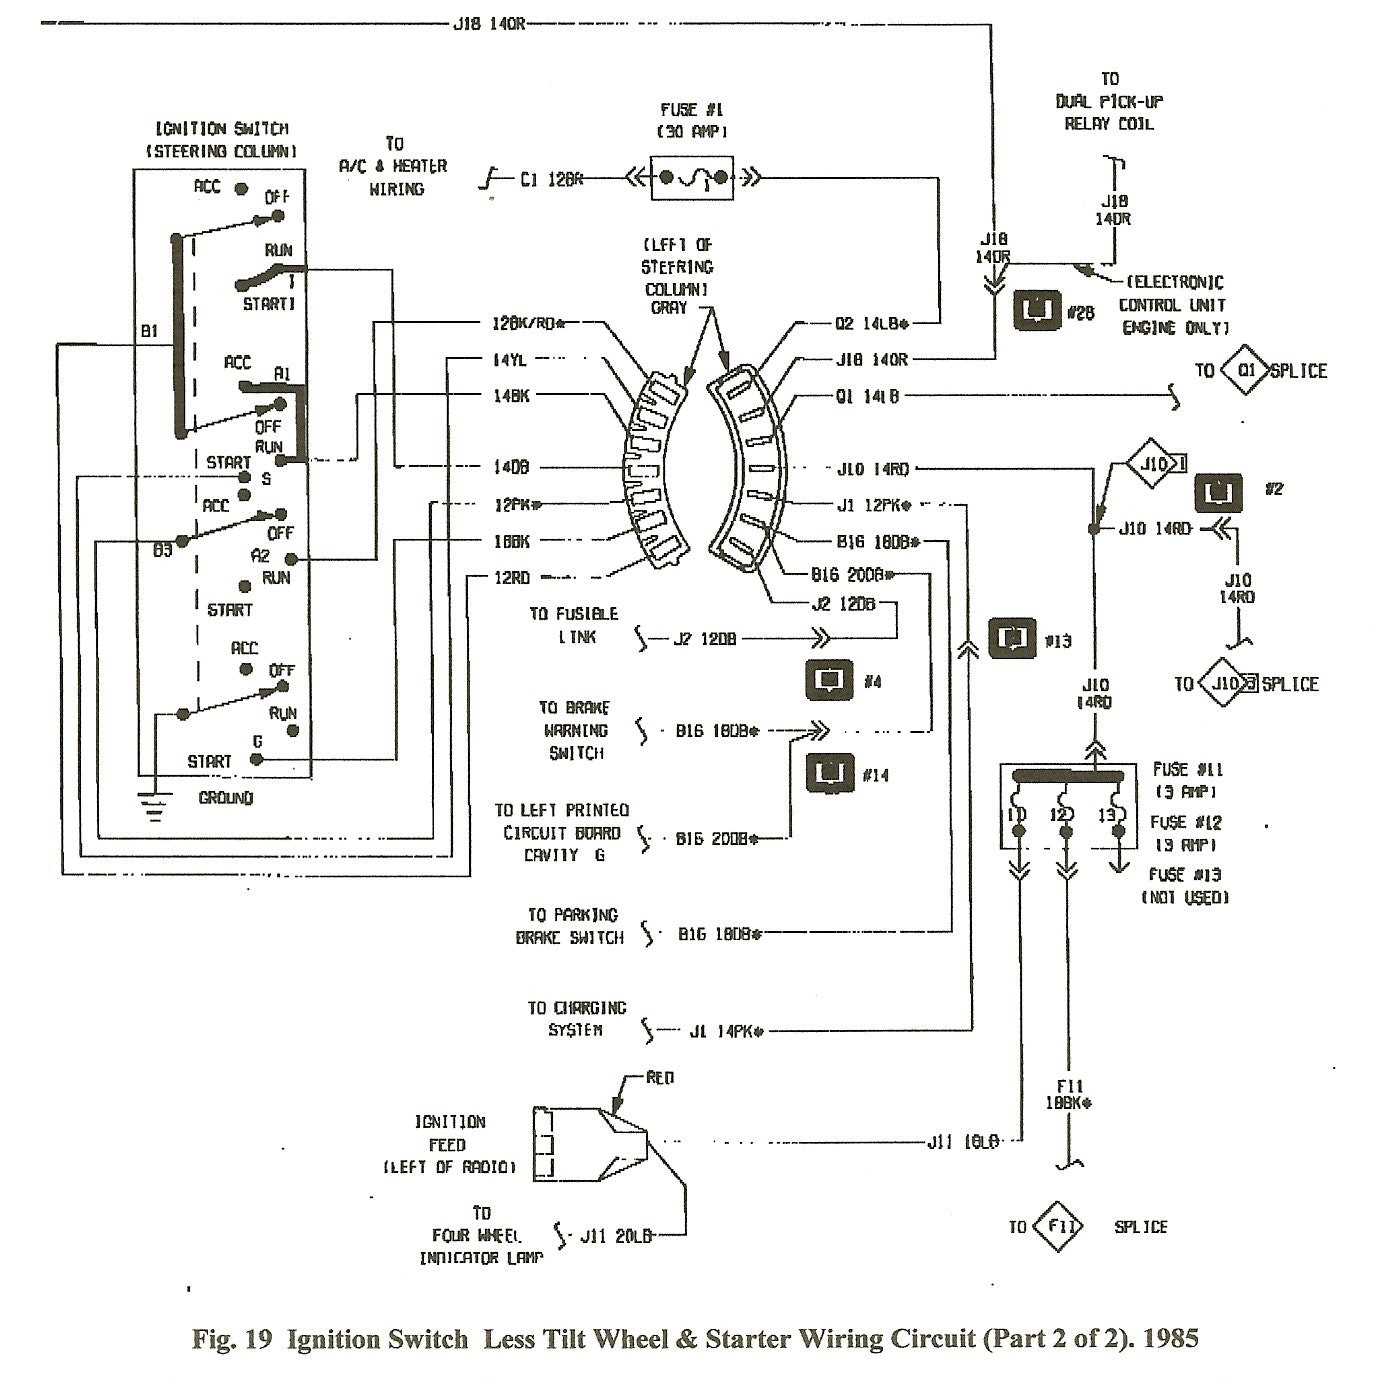 hight resolution of 1977 dodge ramcharger wiring diagram trusted wiring diagrams u2022 rh badajo abnyphoto co